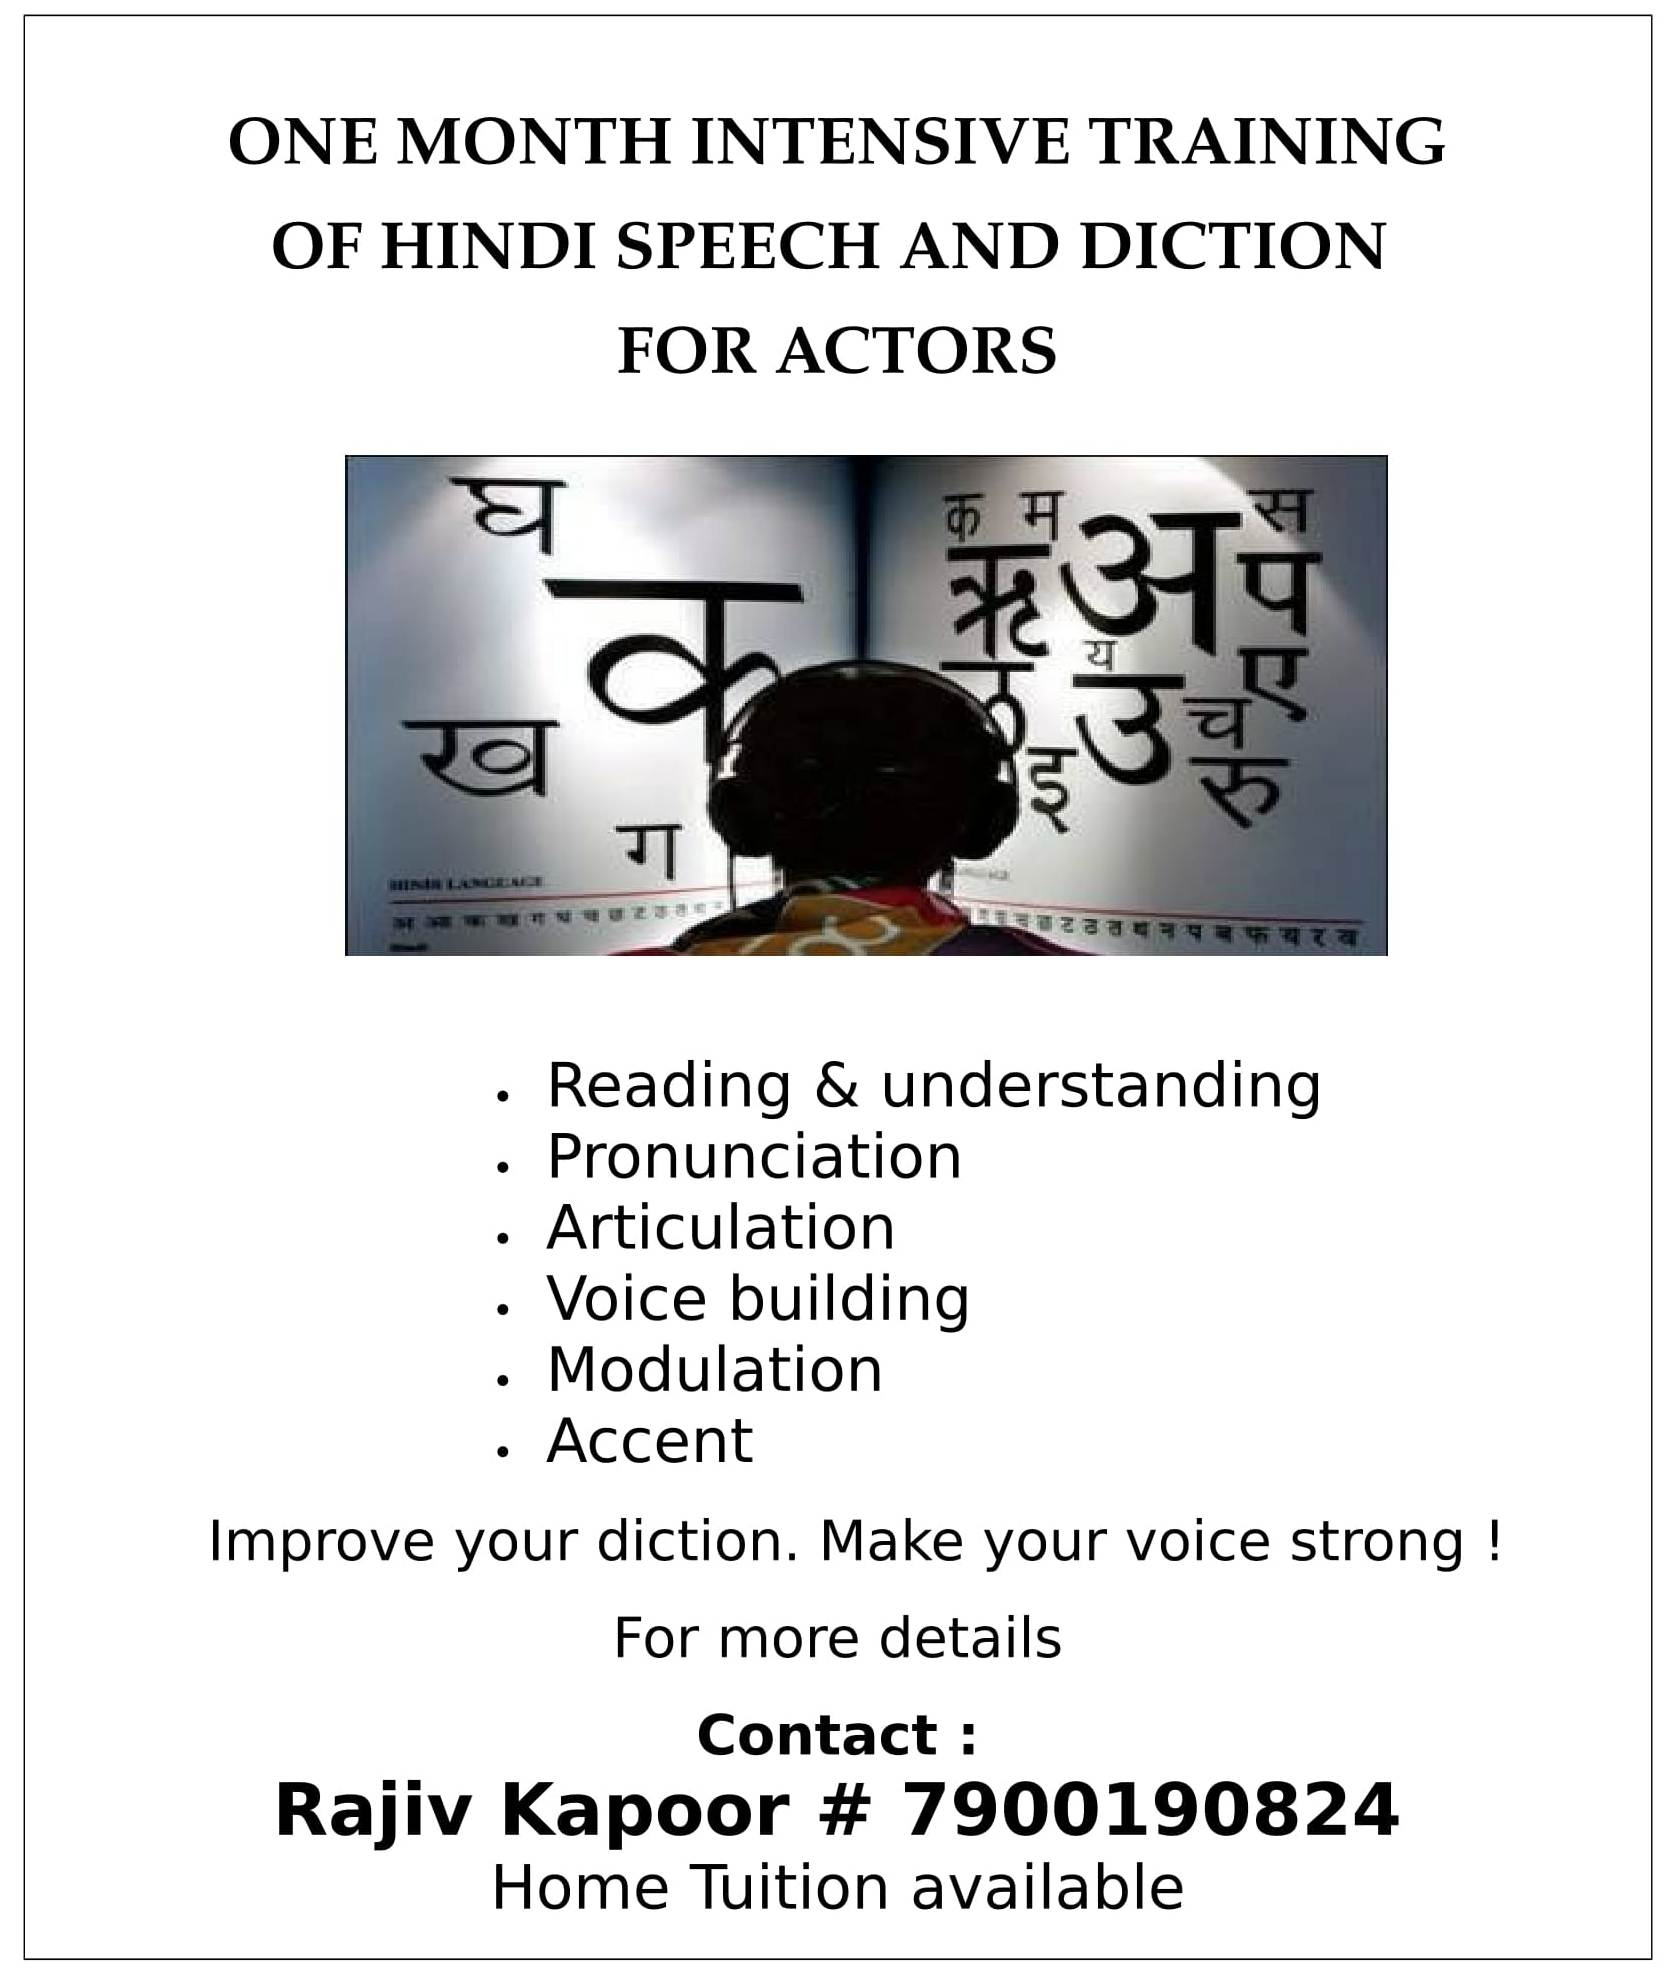 Image for Hindi Speech and Diction Classes